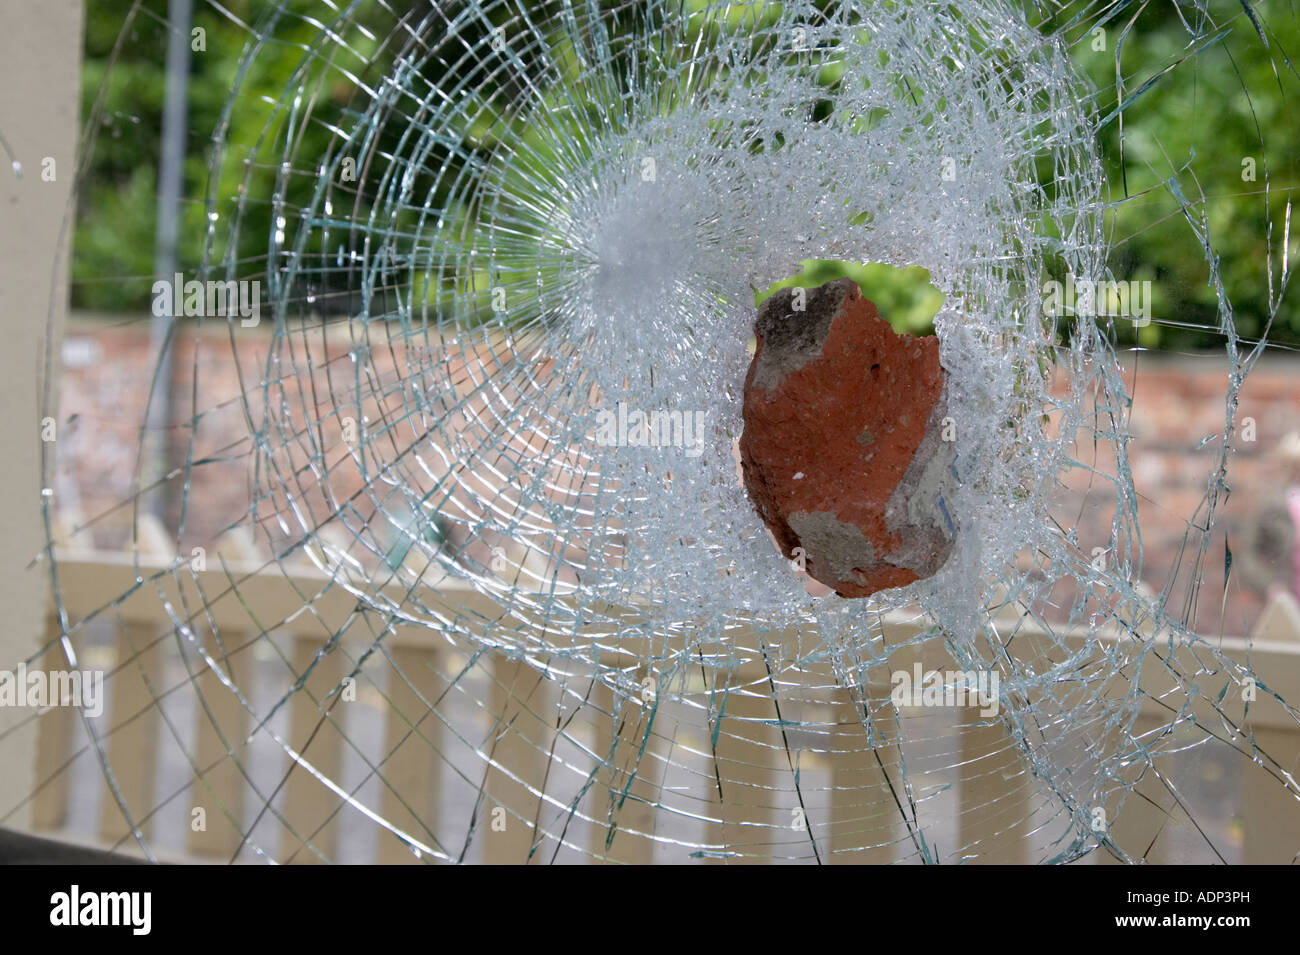 old red brick stuck in broken toughened strengthened glass window thrown by vandals in a hate crime looking out - Stock Image